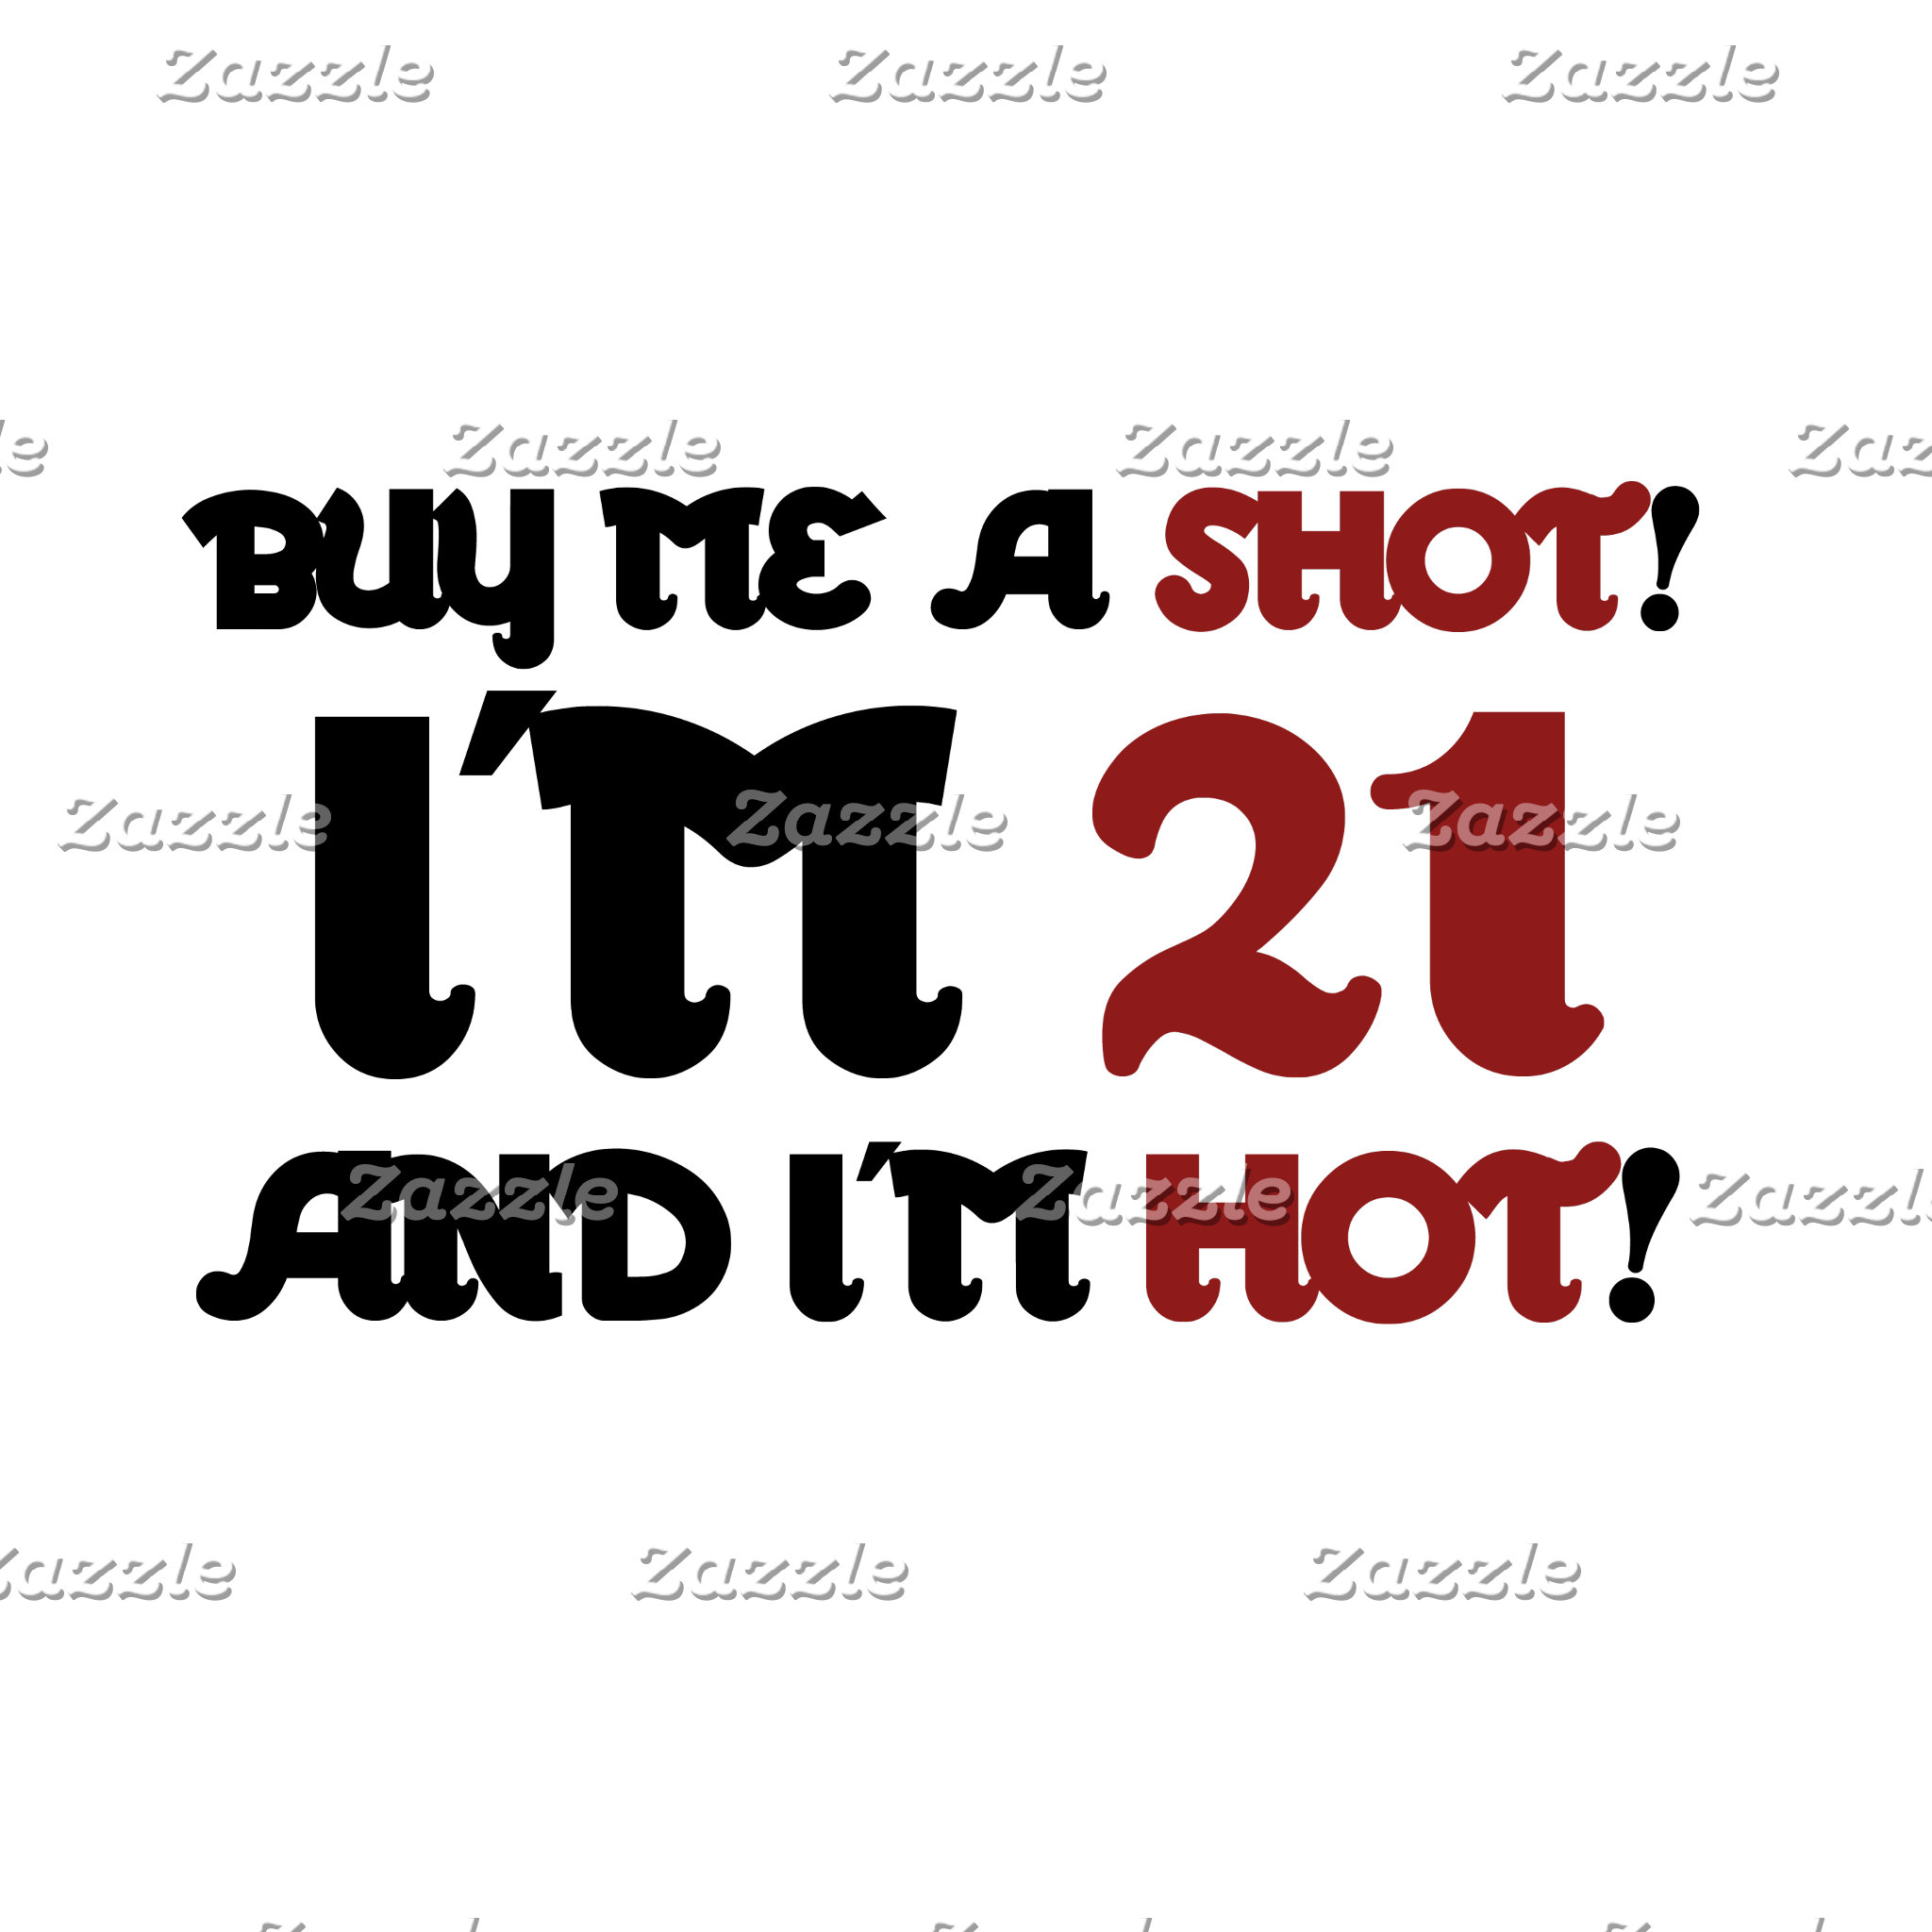 21 and HOT